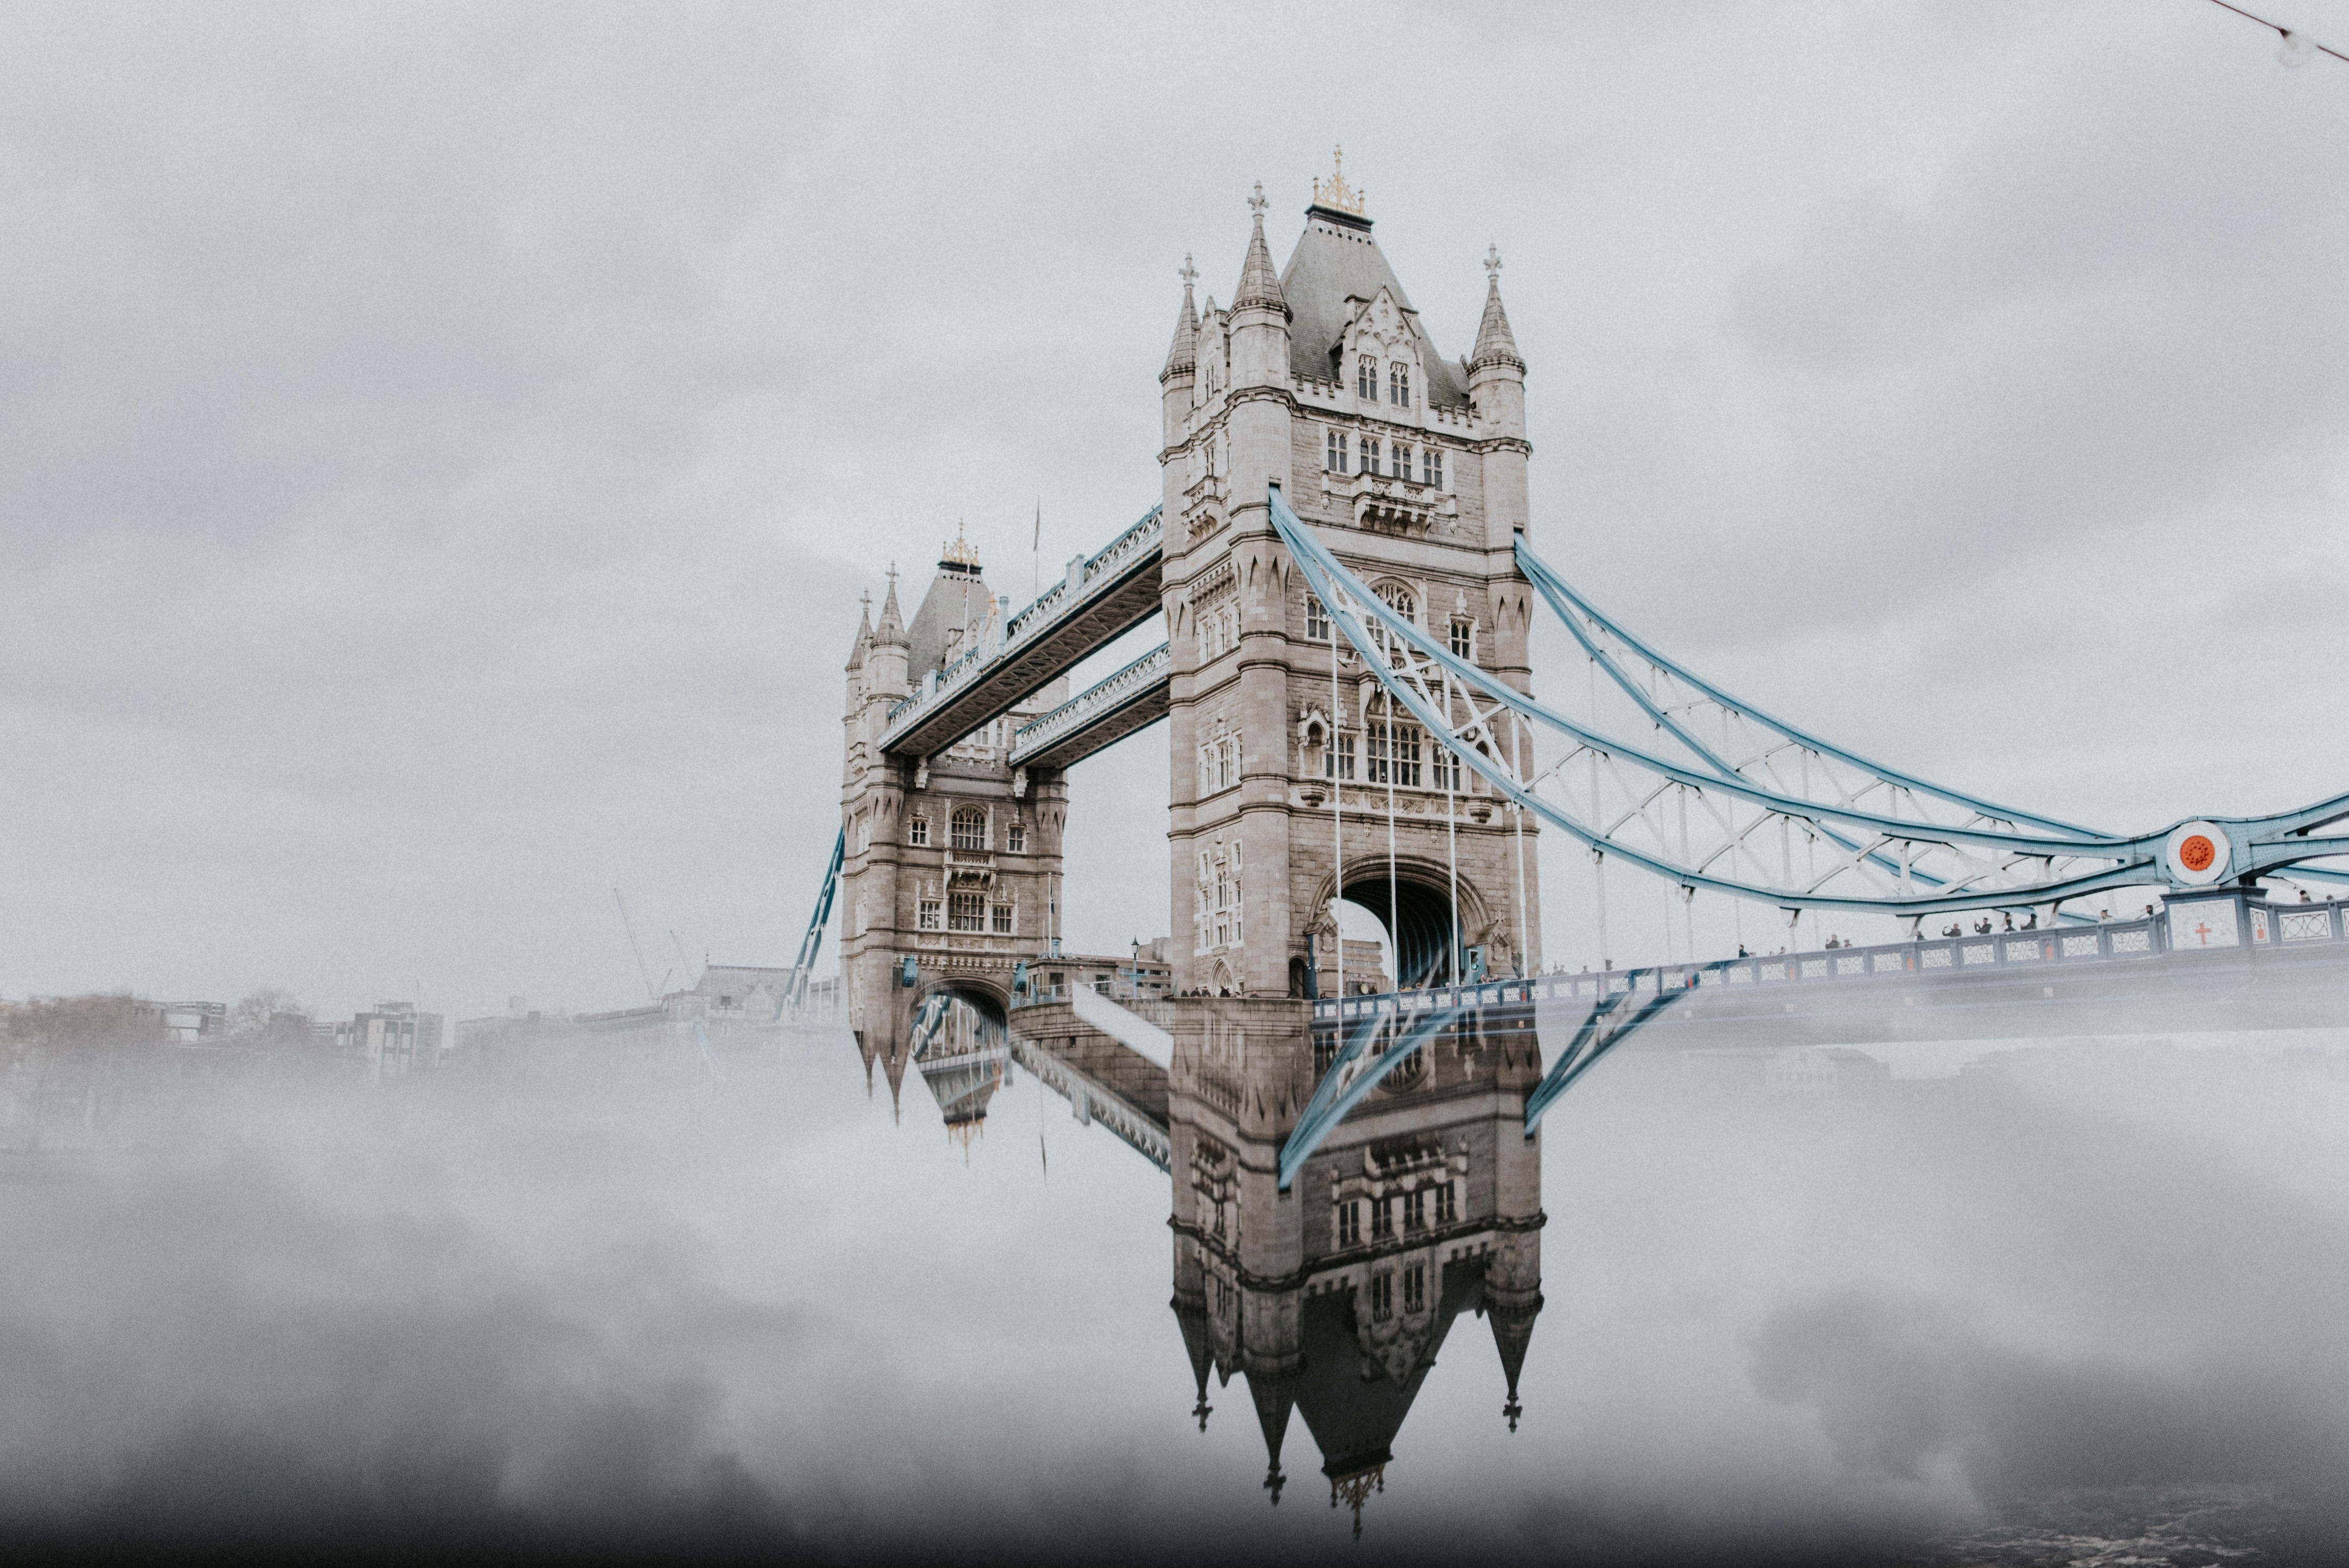 How To Make The Most Of 3 Days in London | A 3-Day London Itinerary